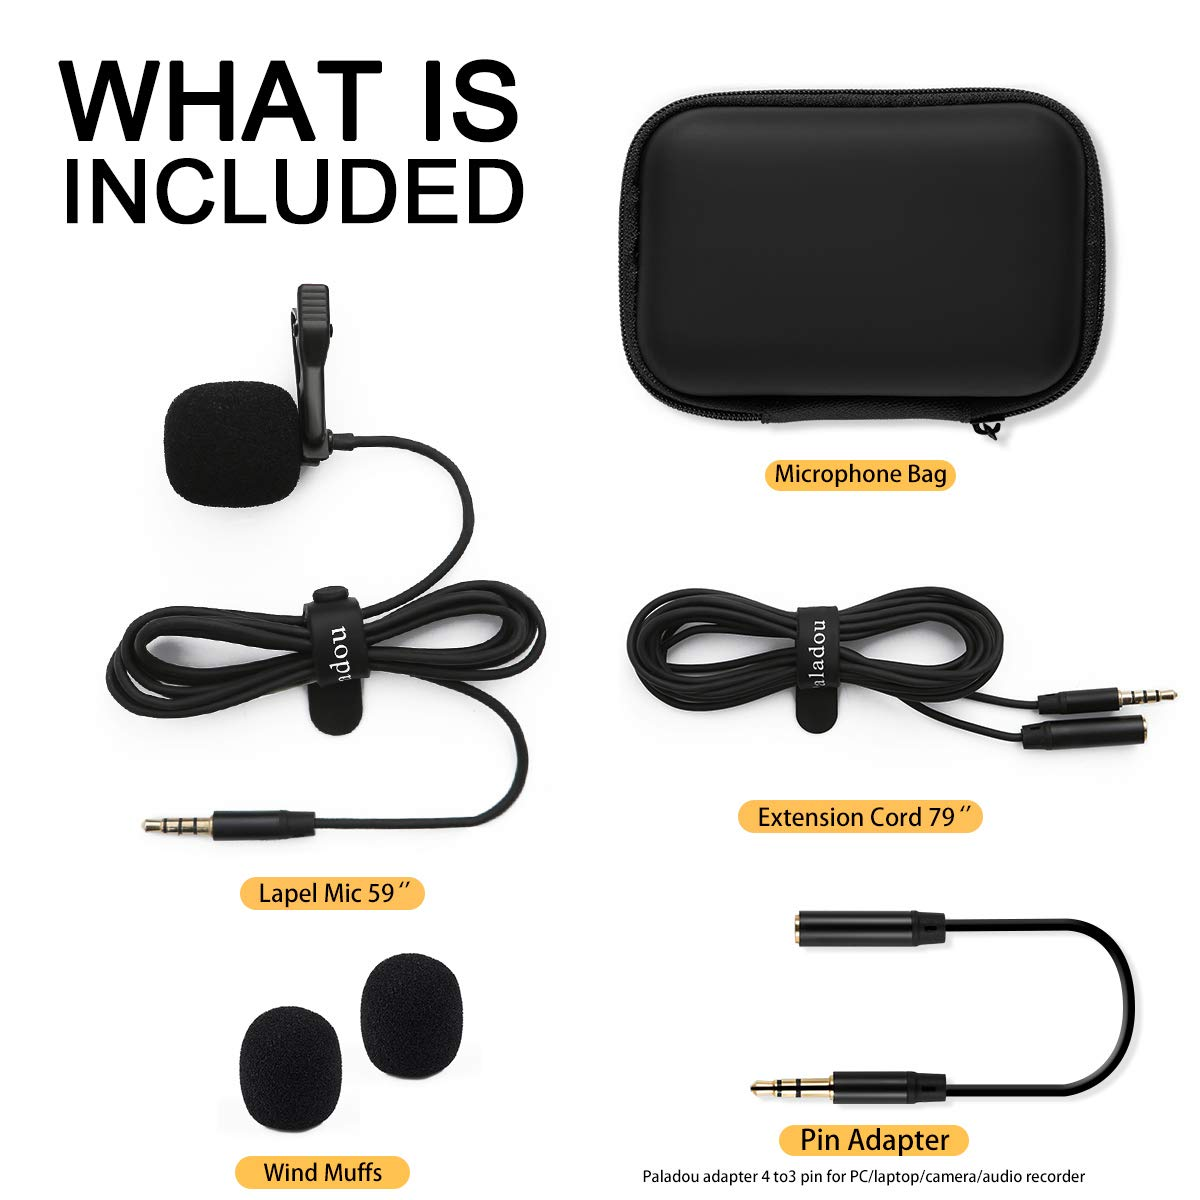 Lavalier Lapel Microphone 3.5mm Mic Pro Best for iPhone Android Smartphones Recording//YouTube//Podcast//Voice Dictation//Video Conference//Studio//Interview//External Condenser Cell Phone